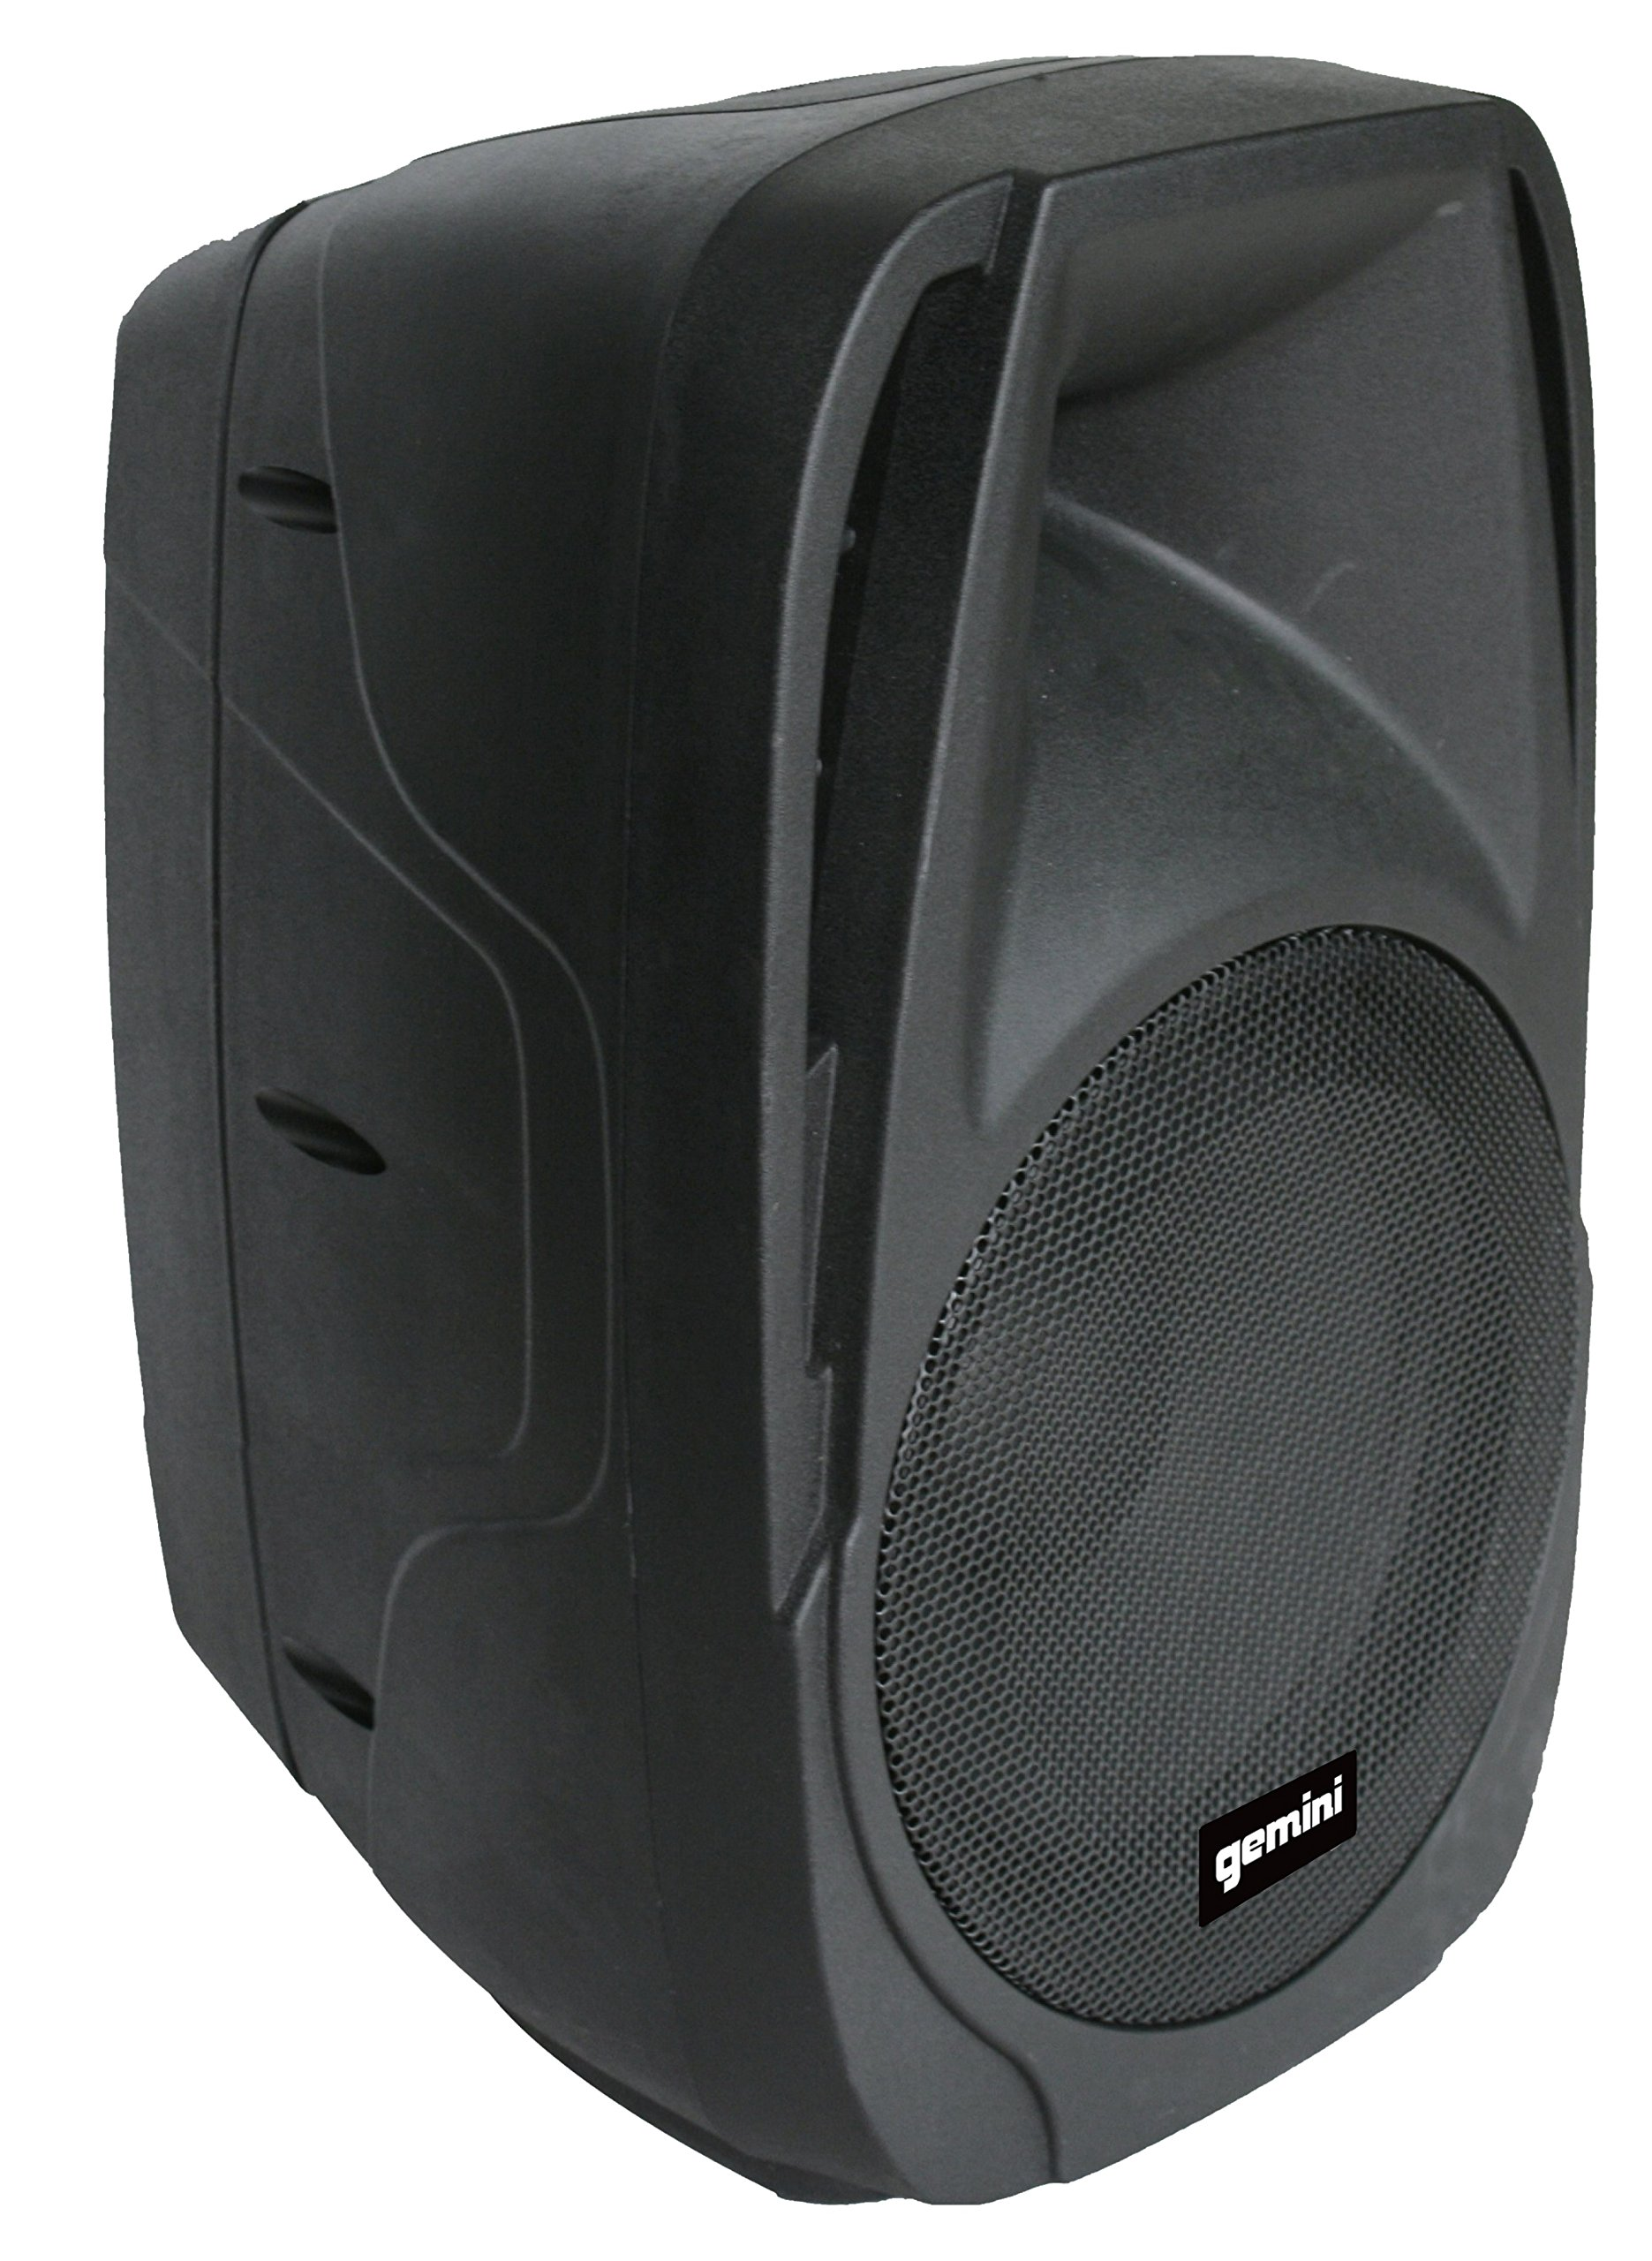 Gemini ES Series ES-210MXBLU Professional Audio Portable PA System with Two 10'' Passive Speakers and Microphone Included, 8 Channel Mixer, 4 Line/Mic Inputs by Gemini (Image #3)